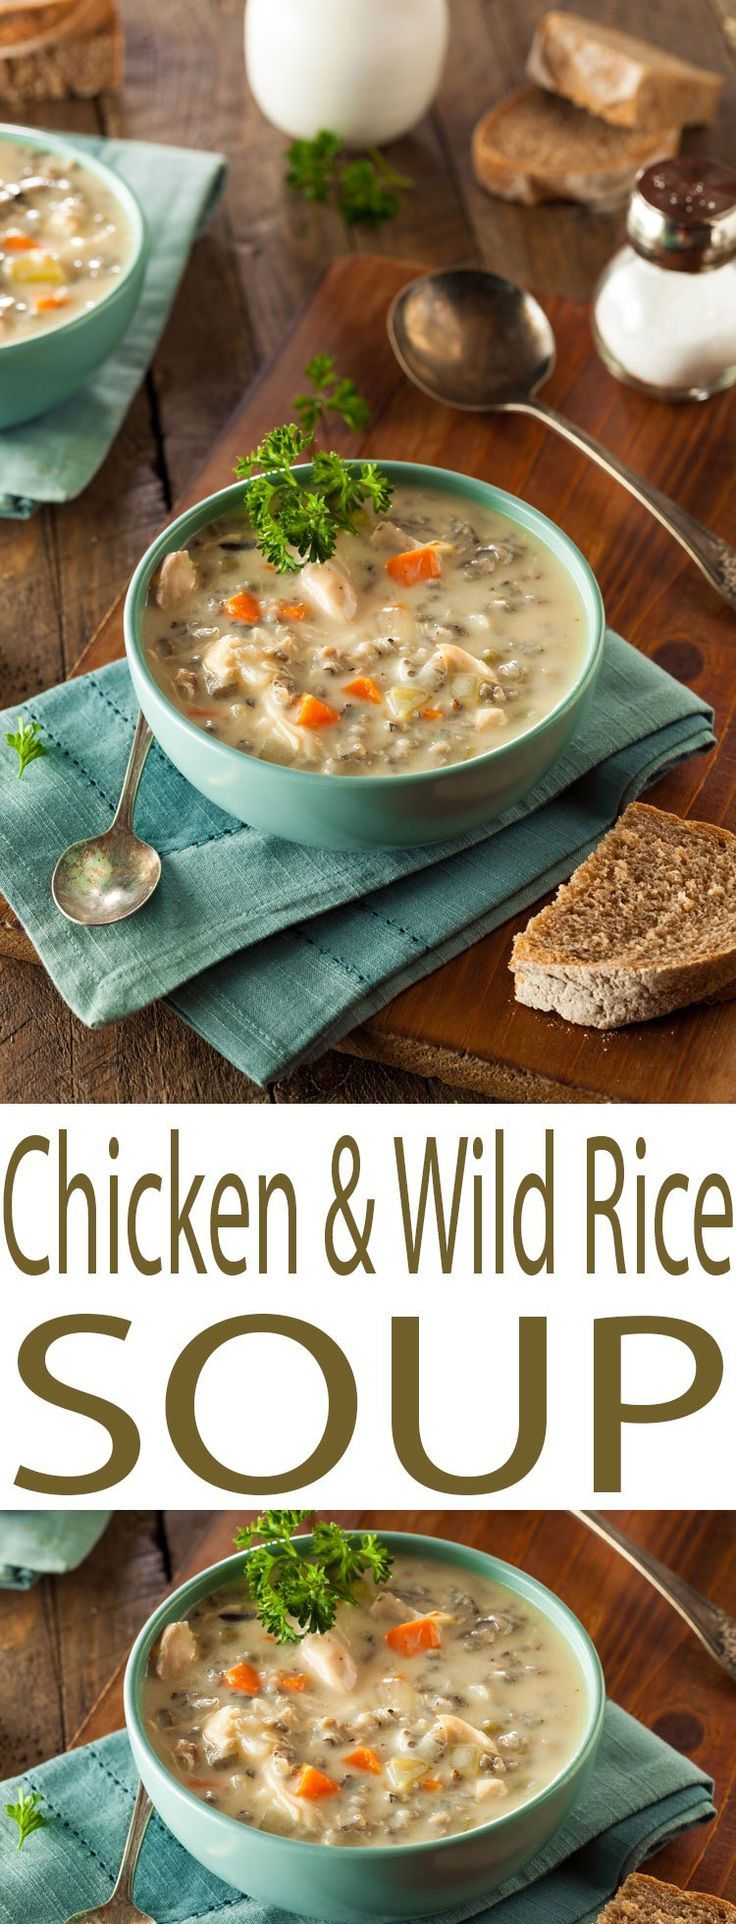 Enjoy this hearty Chicken and Wild Rice Soup that is the perfect comfort food for cooler days of fall and winter. Easy soup recipe with wild rice.